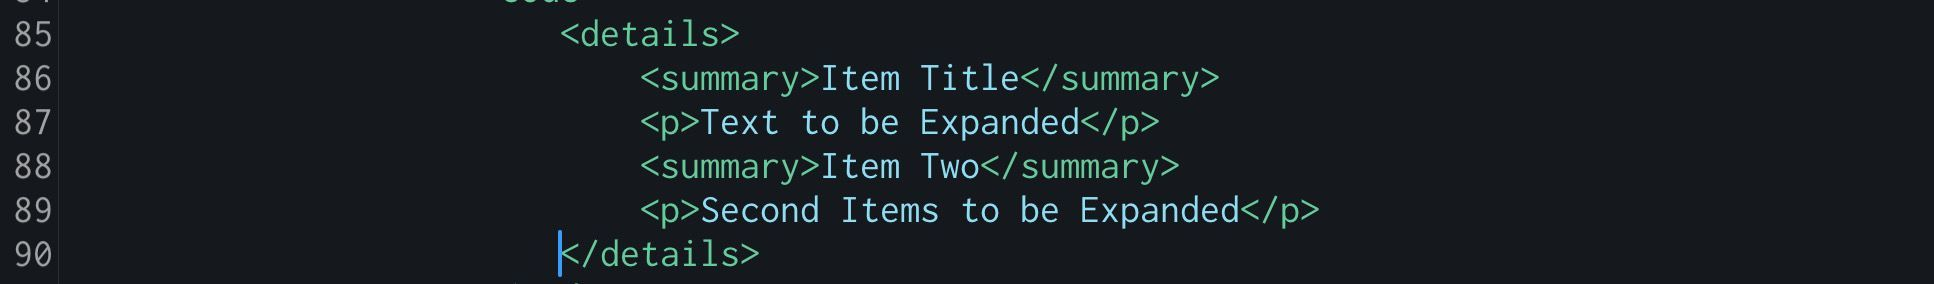 HTML details tag example